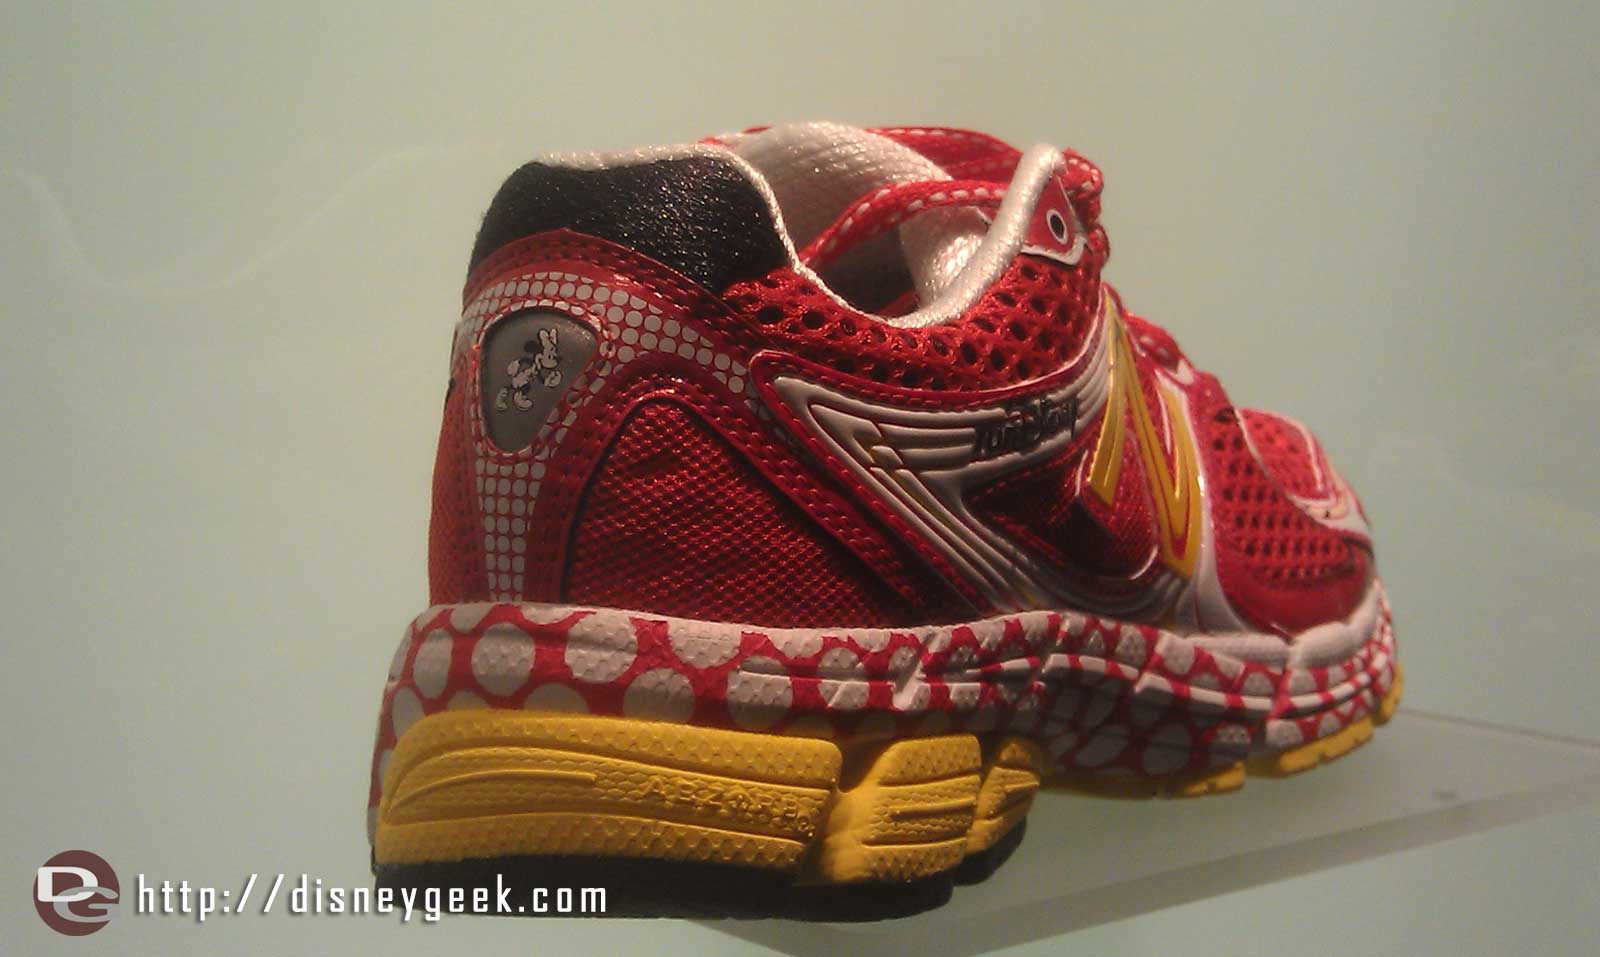 The new Run Disney shoes are on display